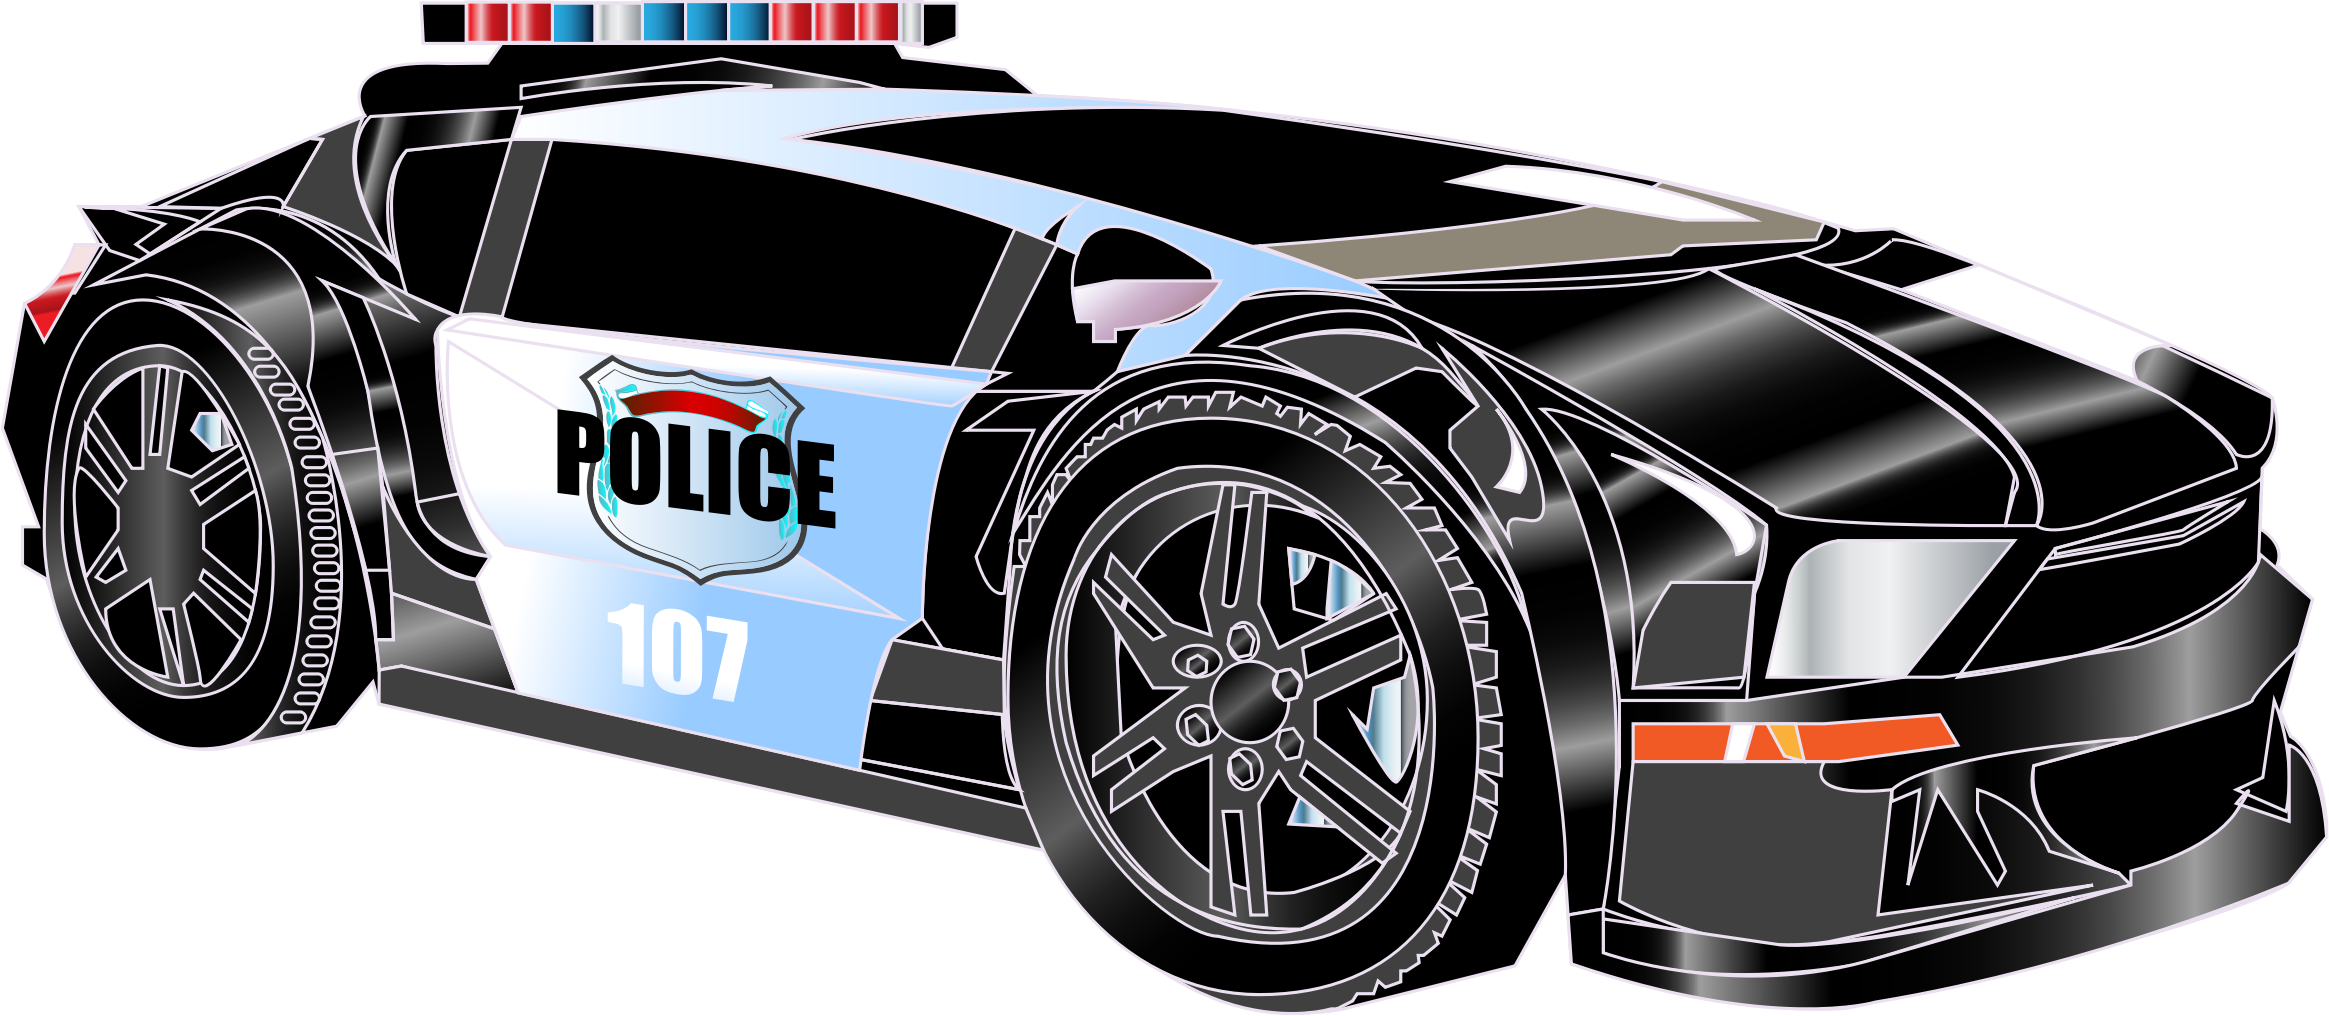 Clipart police car 2 - Police Car HD PNG - Police HD PNG